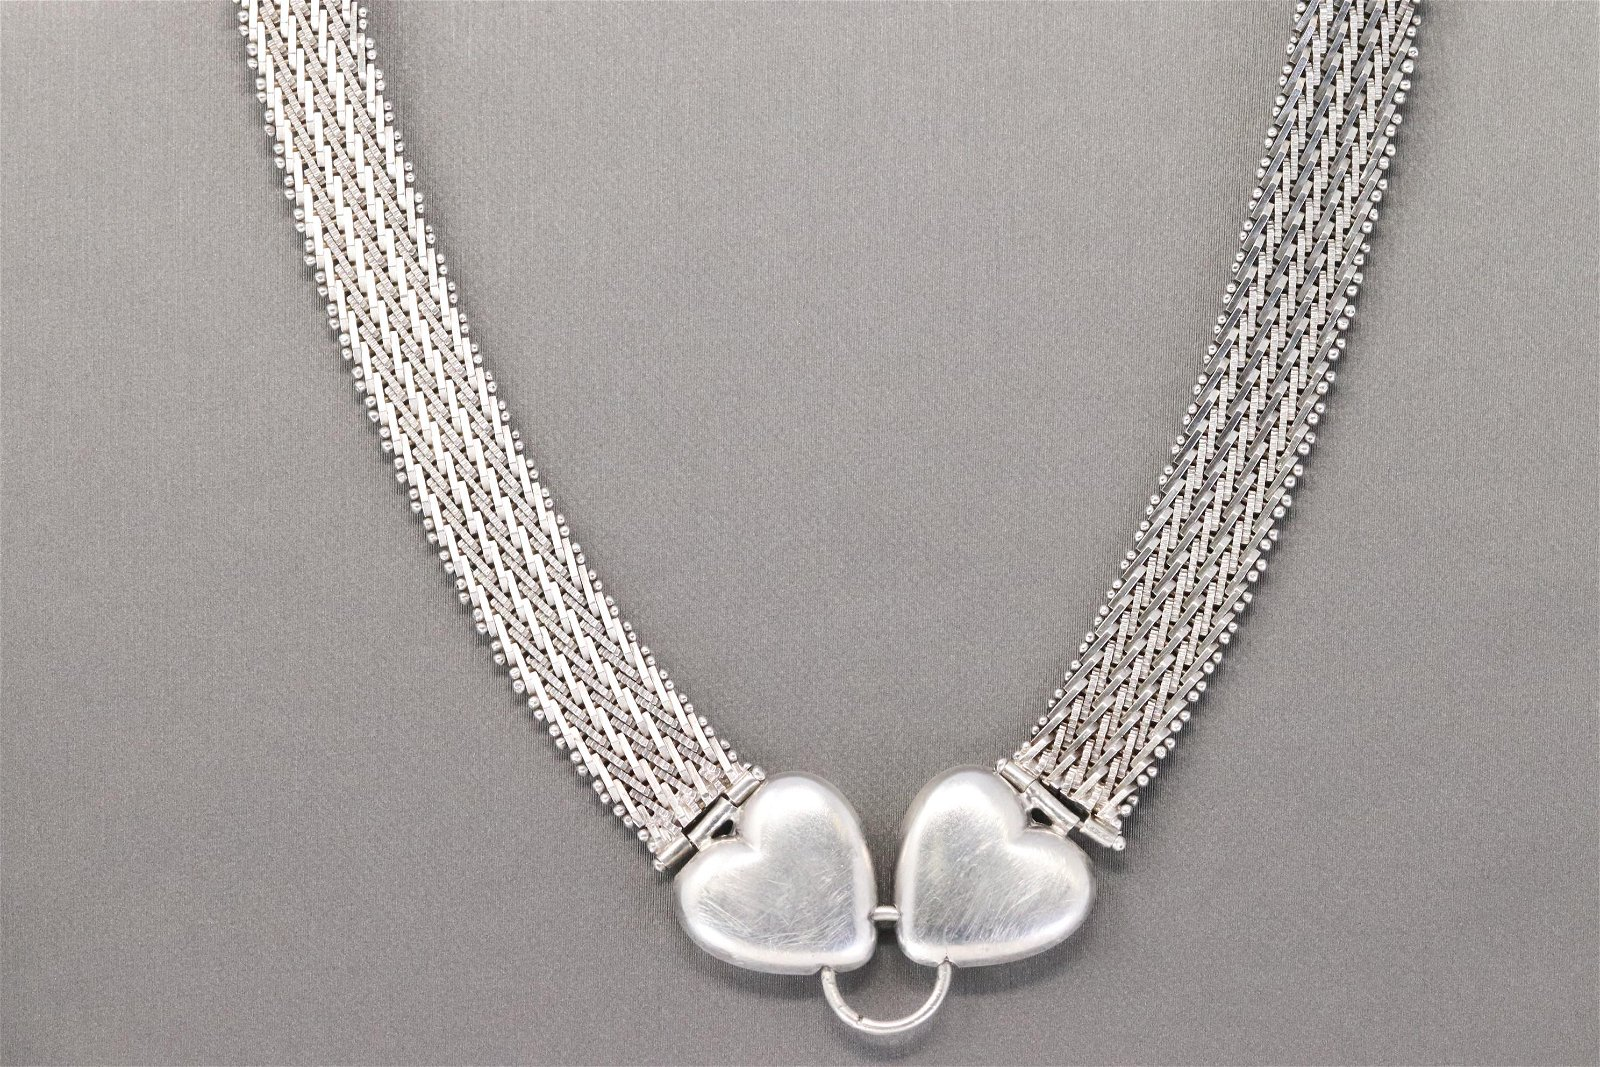 Ladies 925 Silver Heart Necklace.